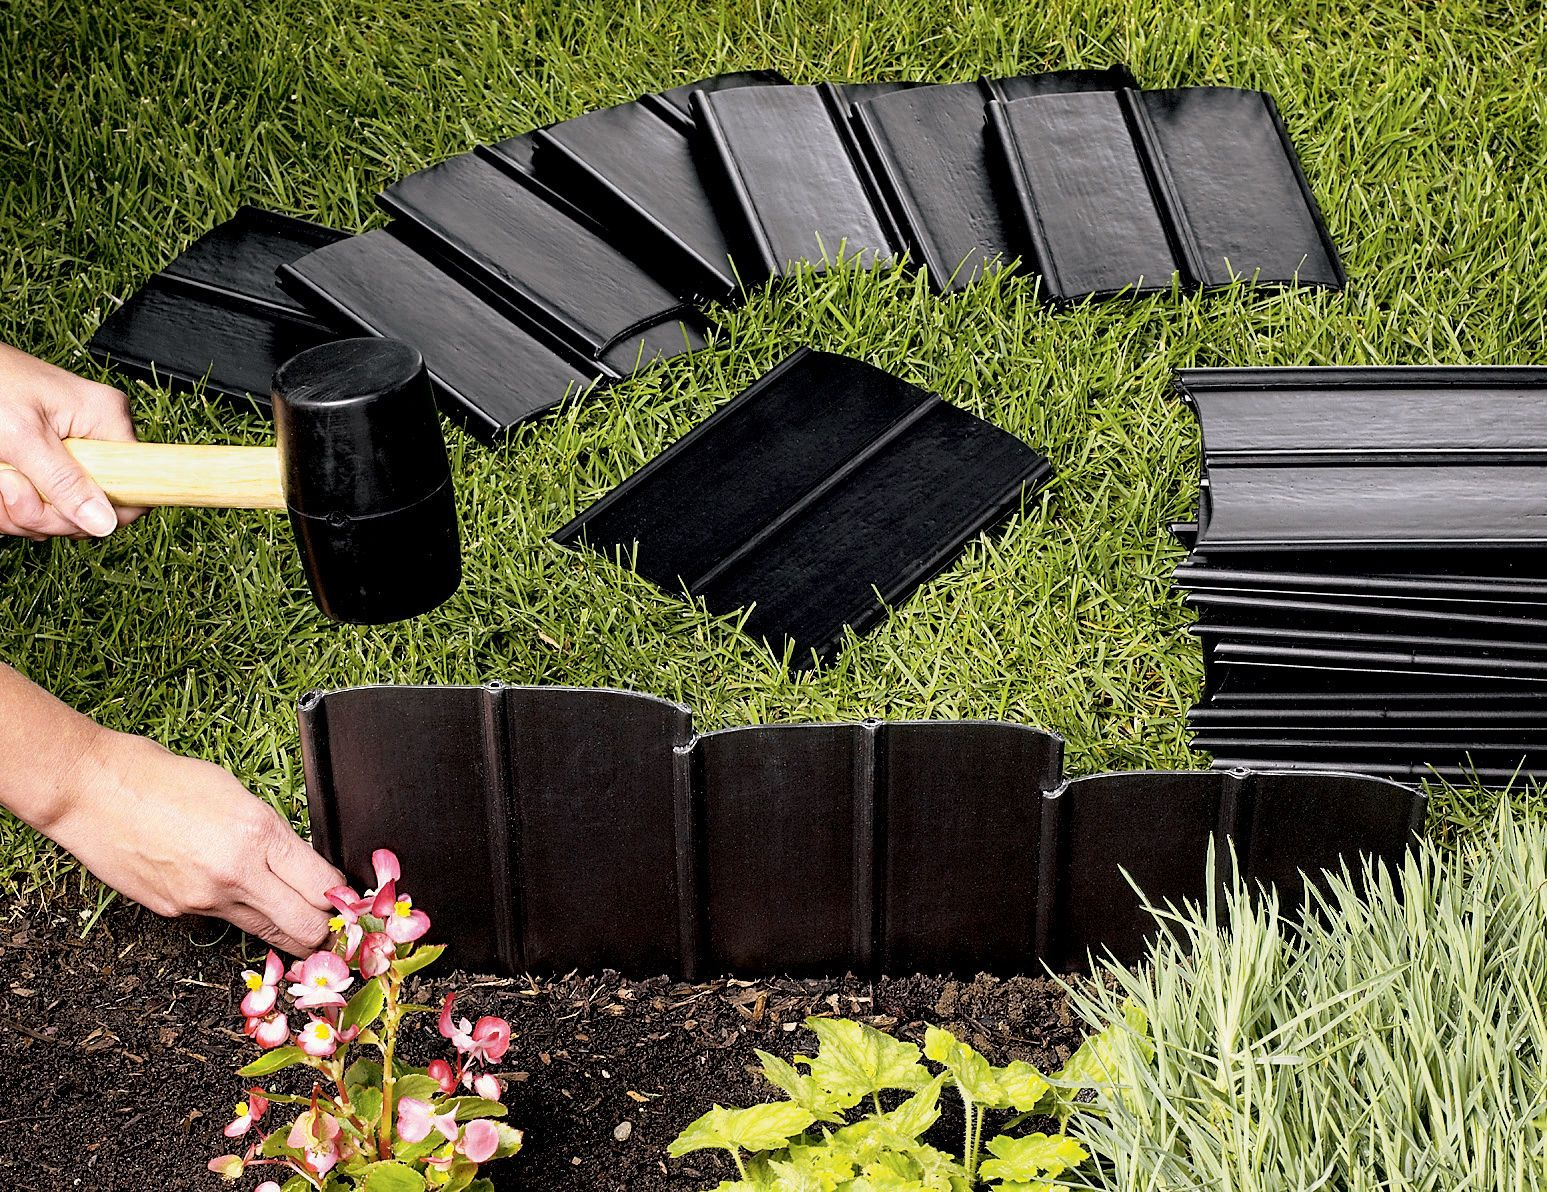 Pound In Landscape Edging | Plastic Garden Edging | Gardeners.com 1 Set  Makes